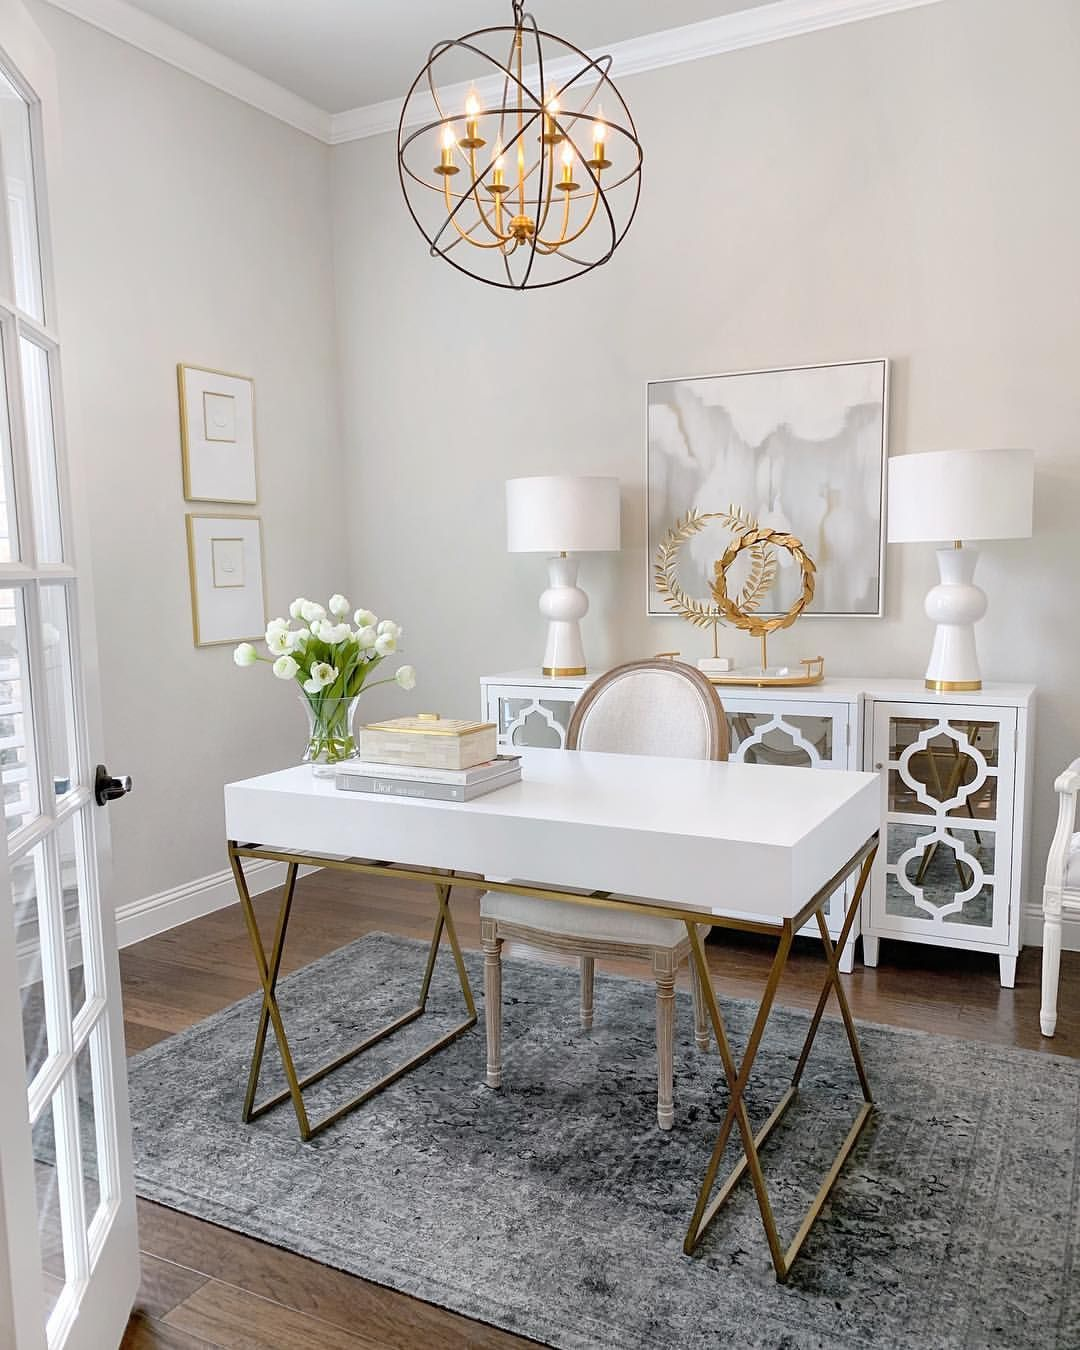 Glam White And Gold Home Office By Thedecordiet Instagram Study White Desk With Gold Kegs Mirrored Cab Home Office Design Home Office Decor Modern Home Office